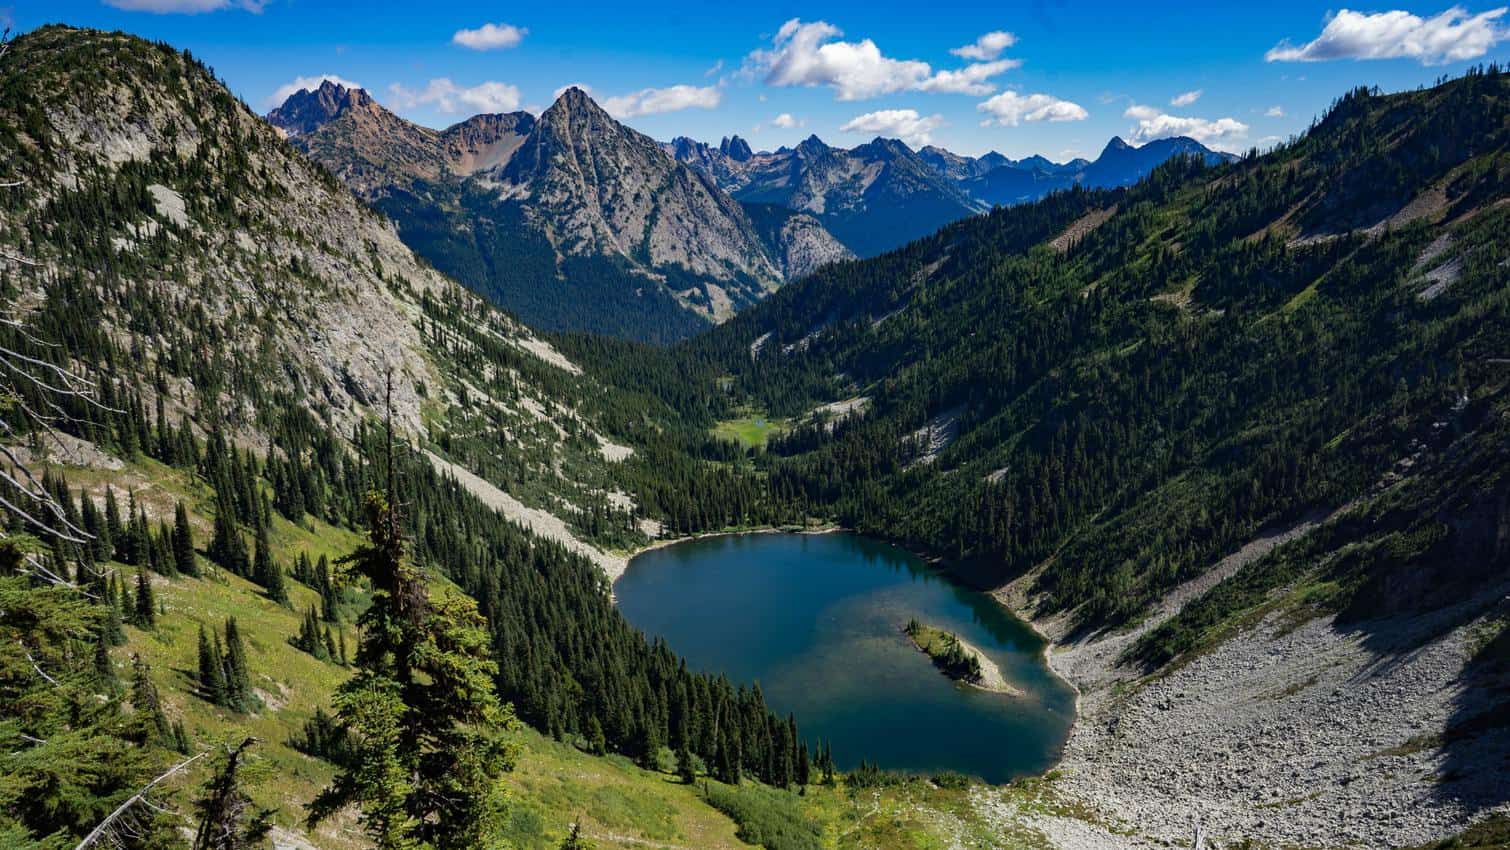 Cascade Pass great landscape of the North Cascades National Park